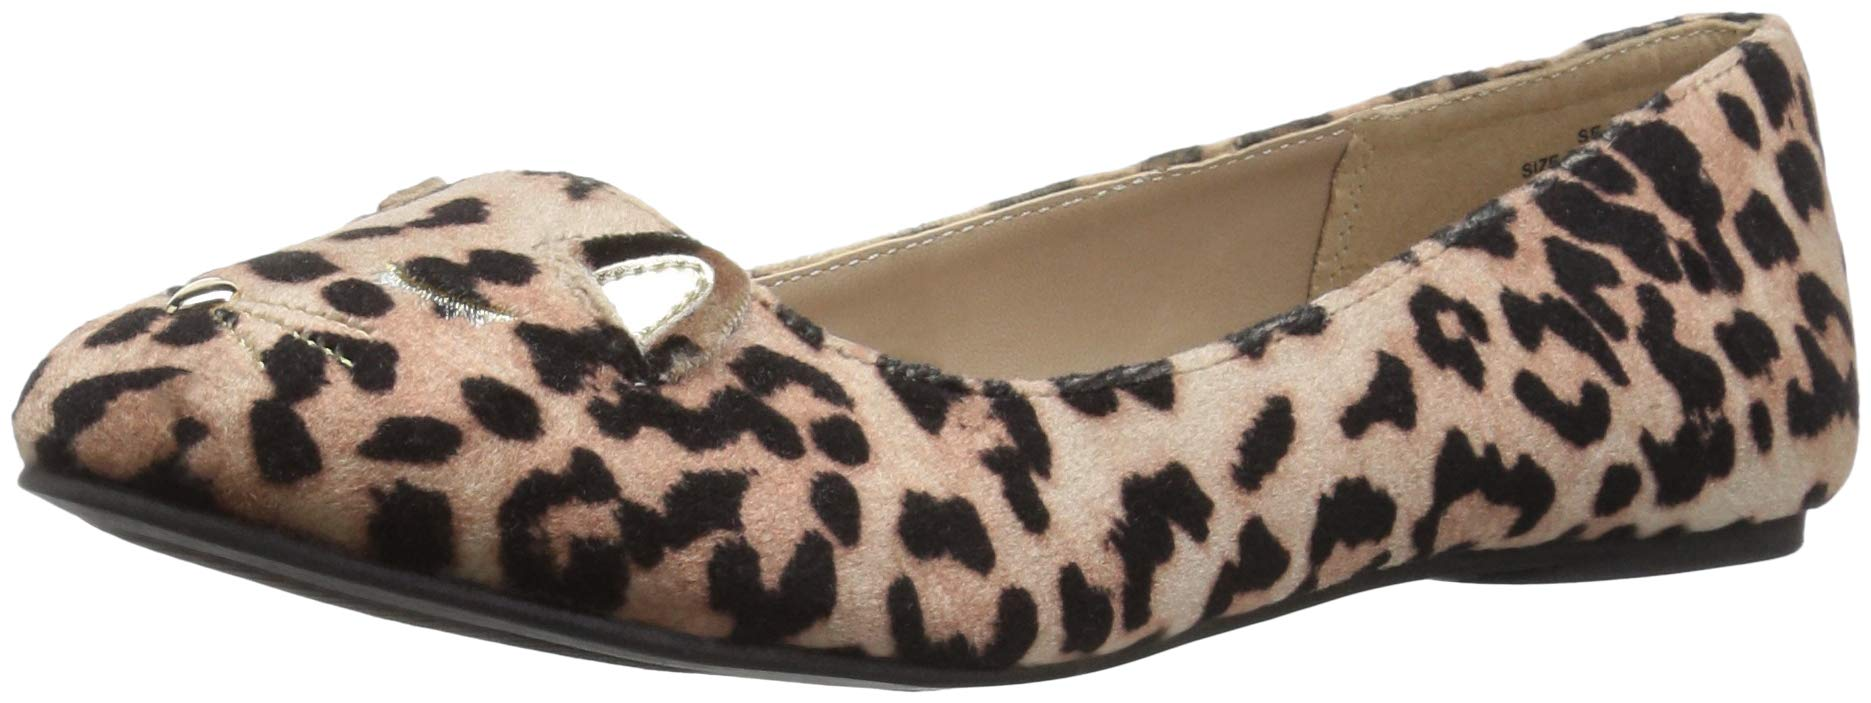 The Children's Place Girls' Ballet Flat, Leopard, Youth 11 Child US Little Kid